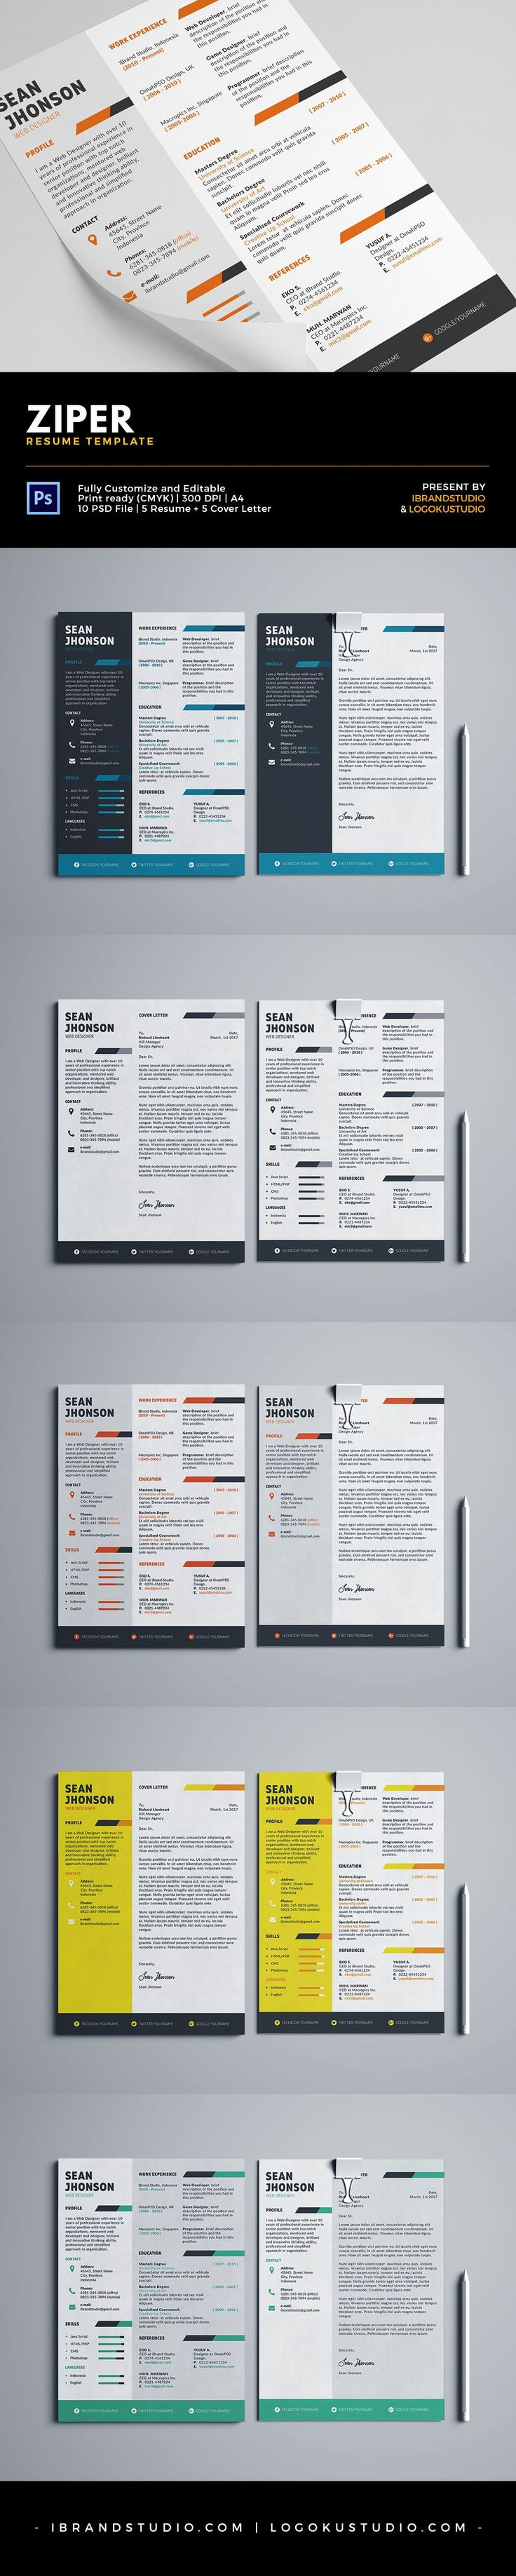 microsoft word letter of resignation%0A Free Ziper Resume Template and Cover Letter  PSD